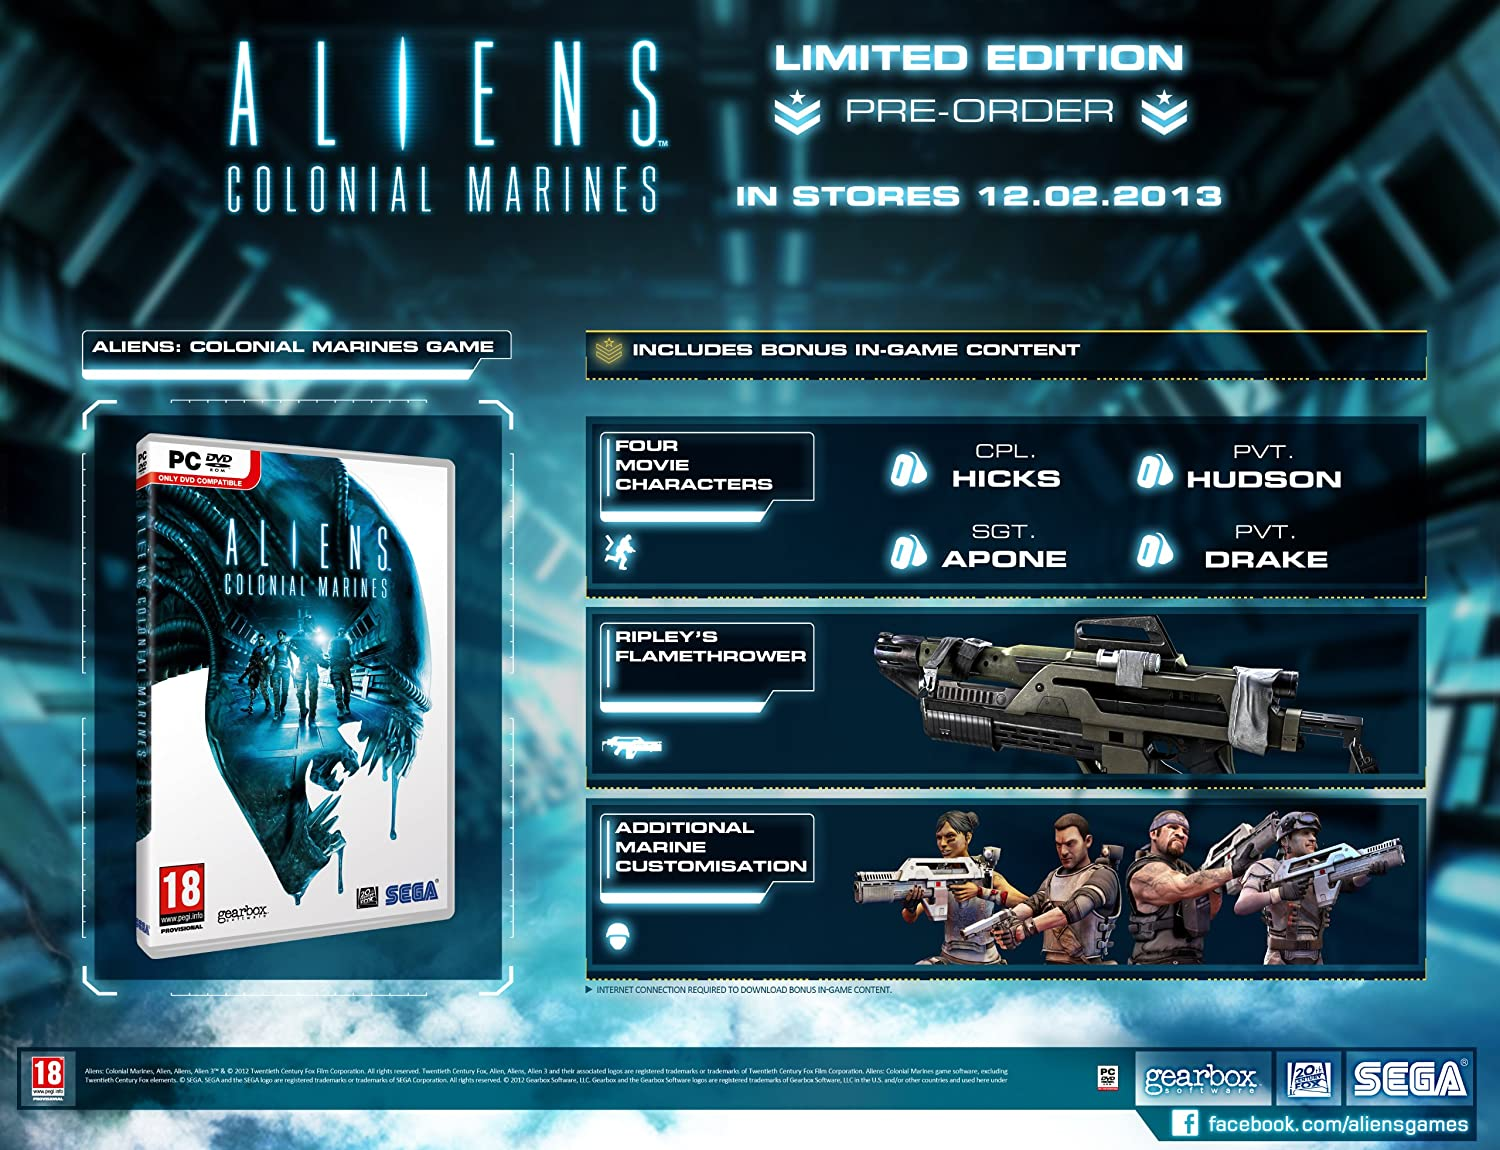 Aliens: Colonial Marines: Limited Edition (PC DVD): Amazon.co.uk: PC &  Video Games